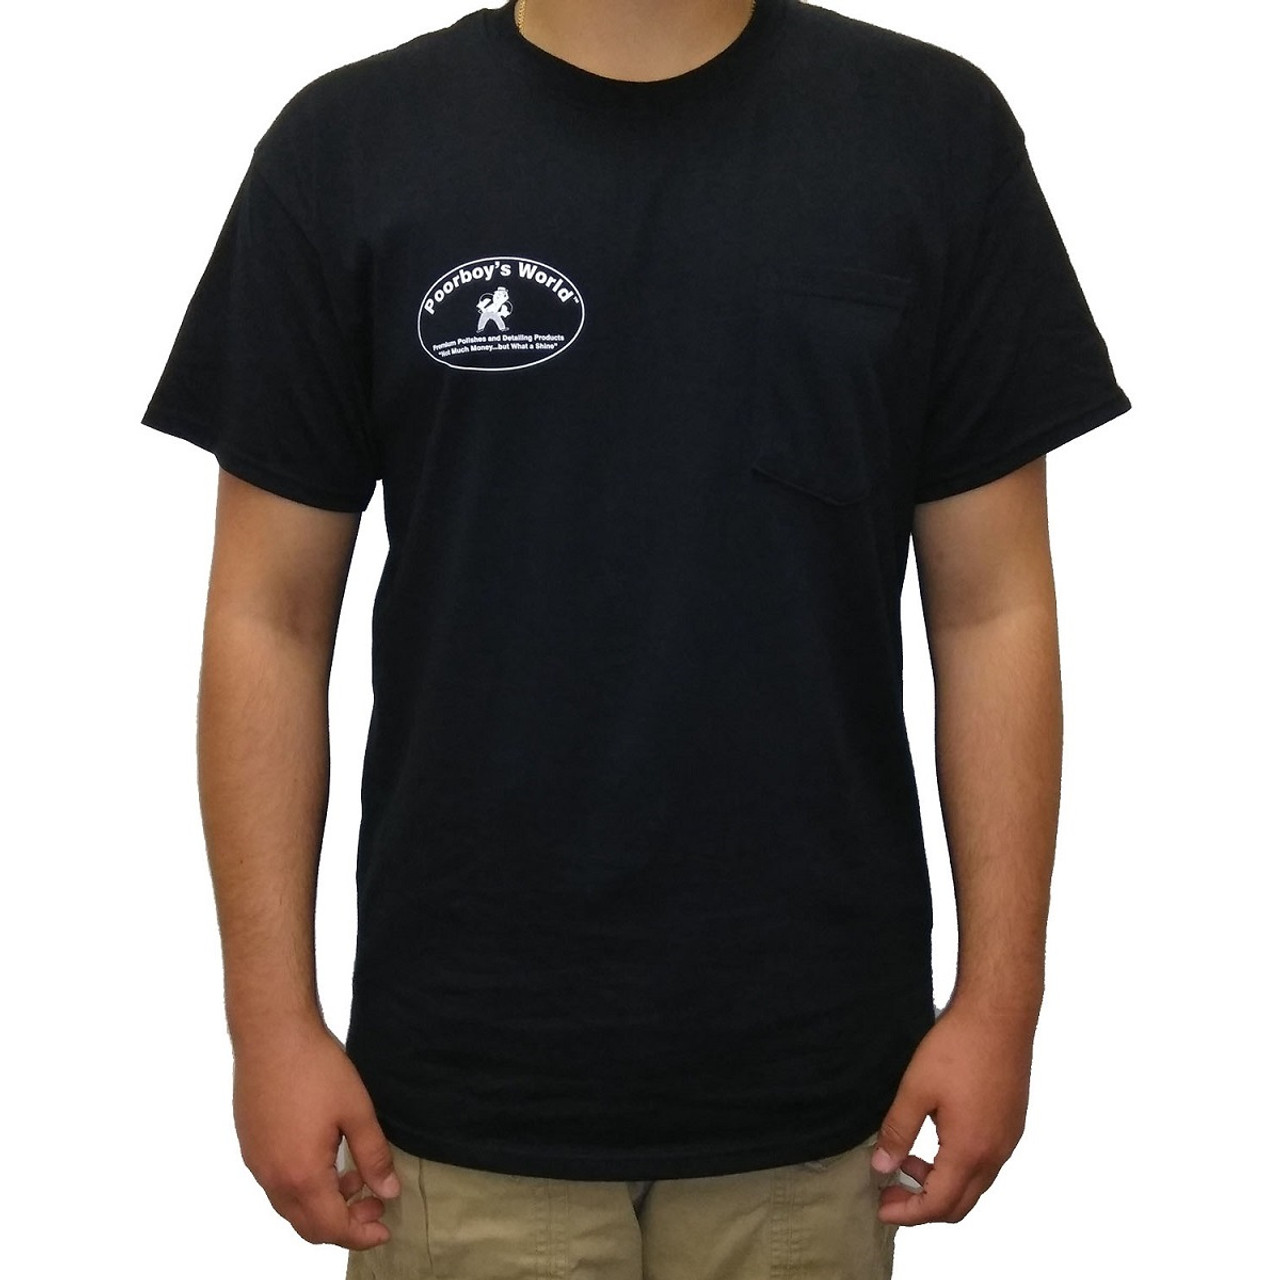 Poorboy's World Black T-Shirt w/ Pocket - Large - Front